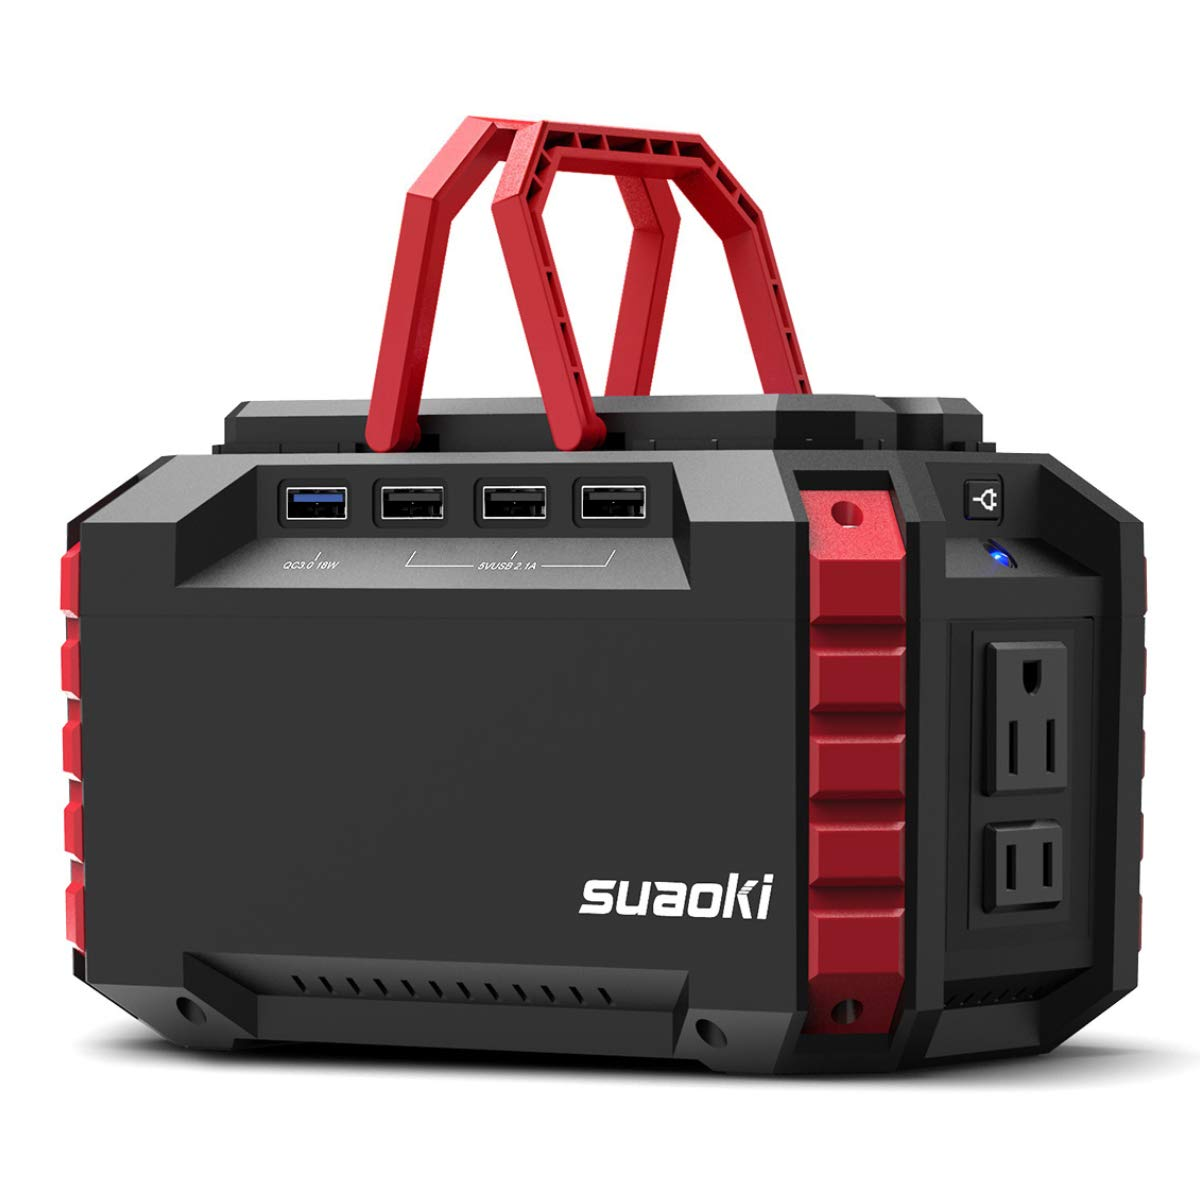 5 Best Portable Battery Generator Reviews 2021 - [In-Depth] 4